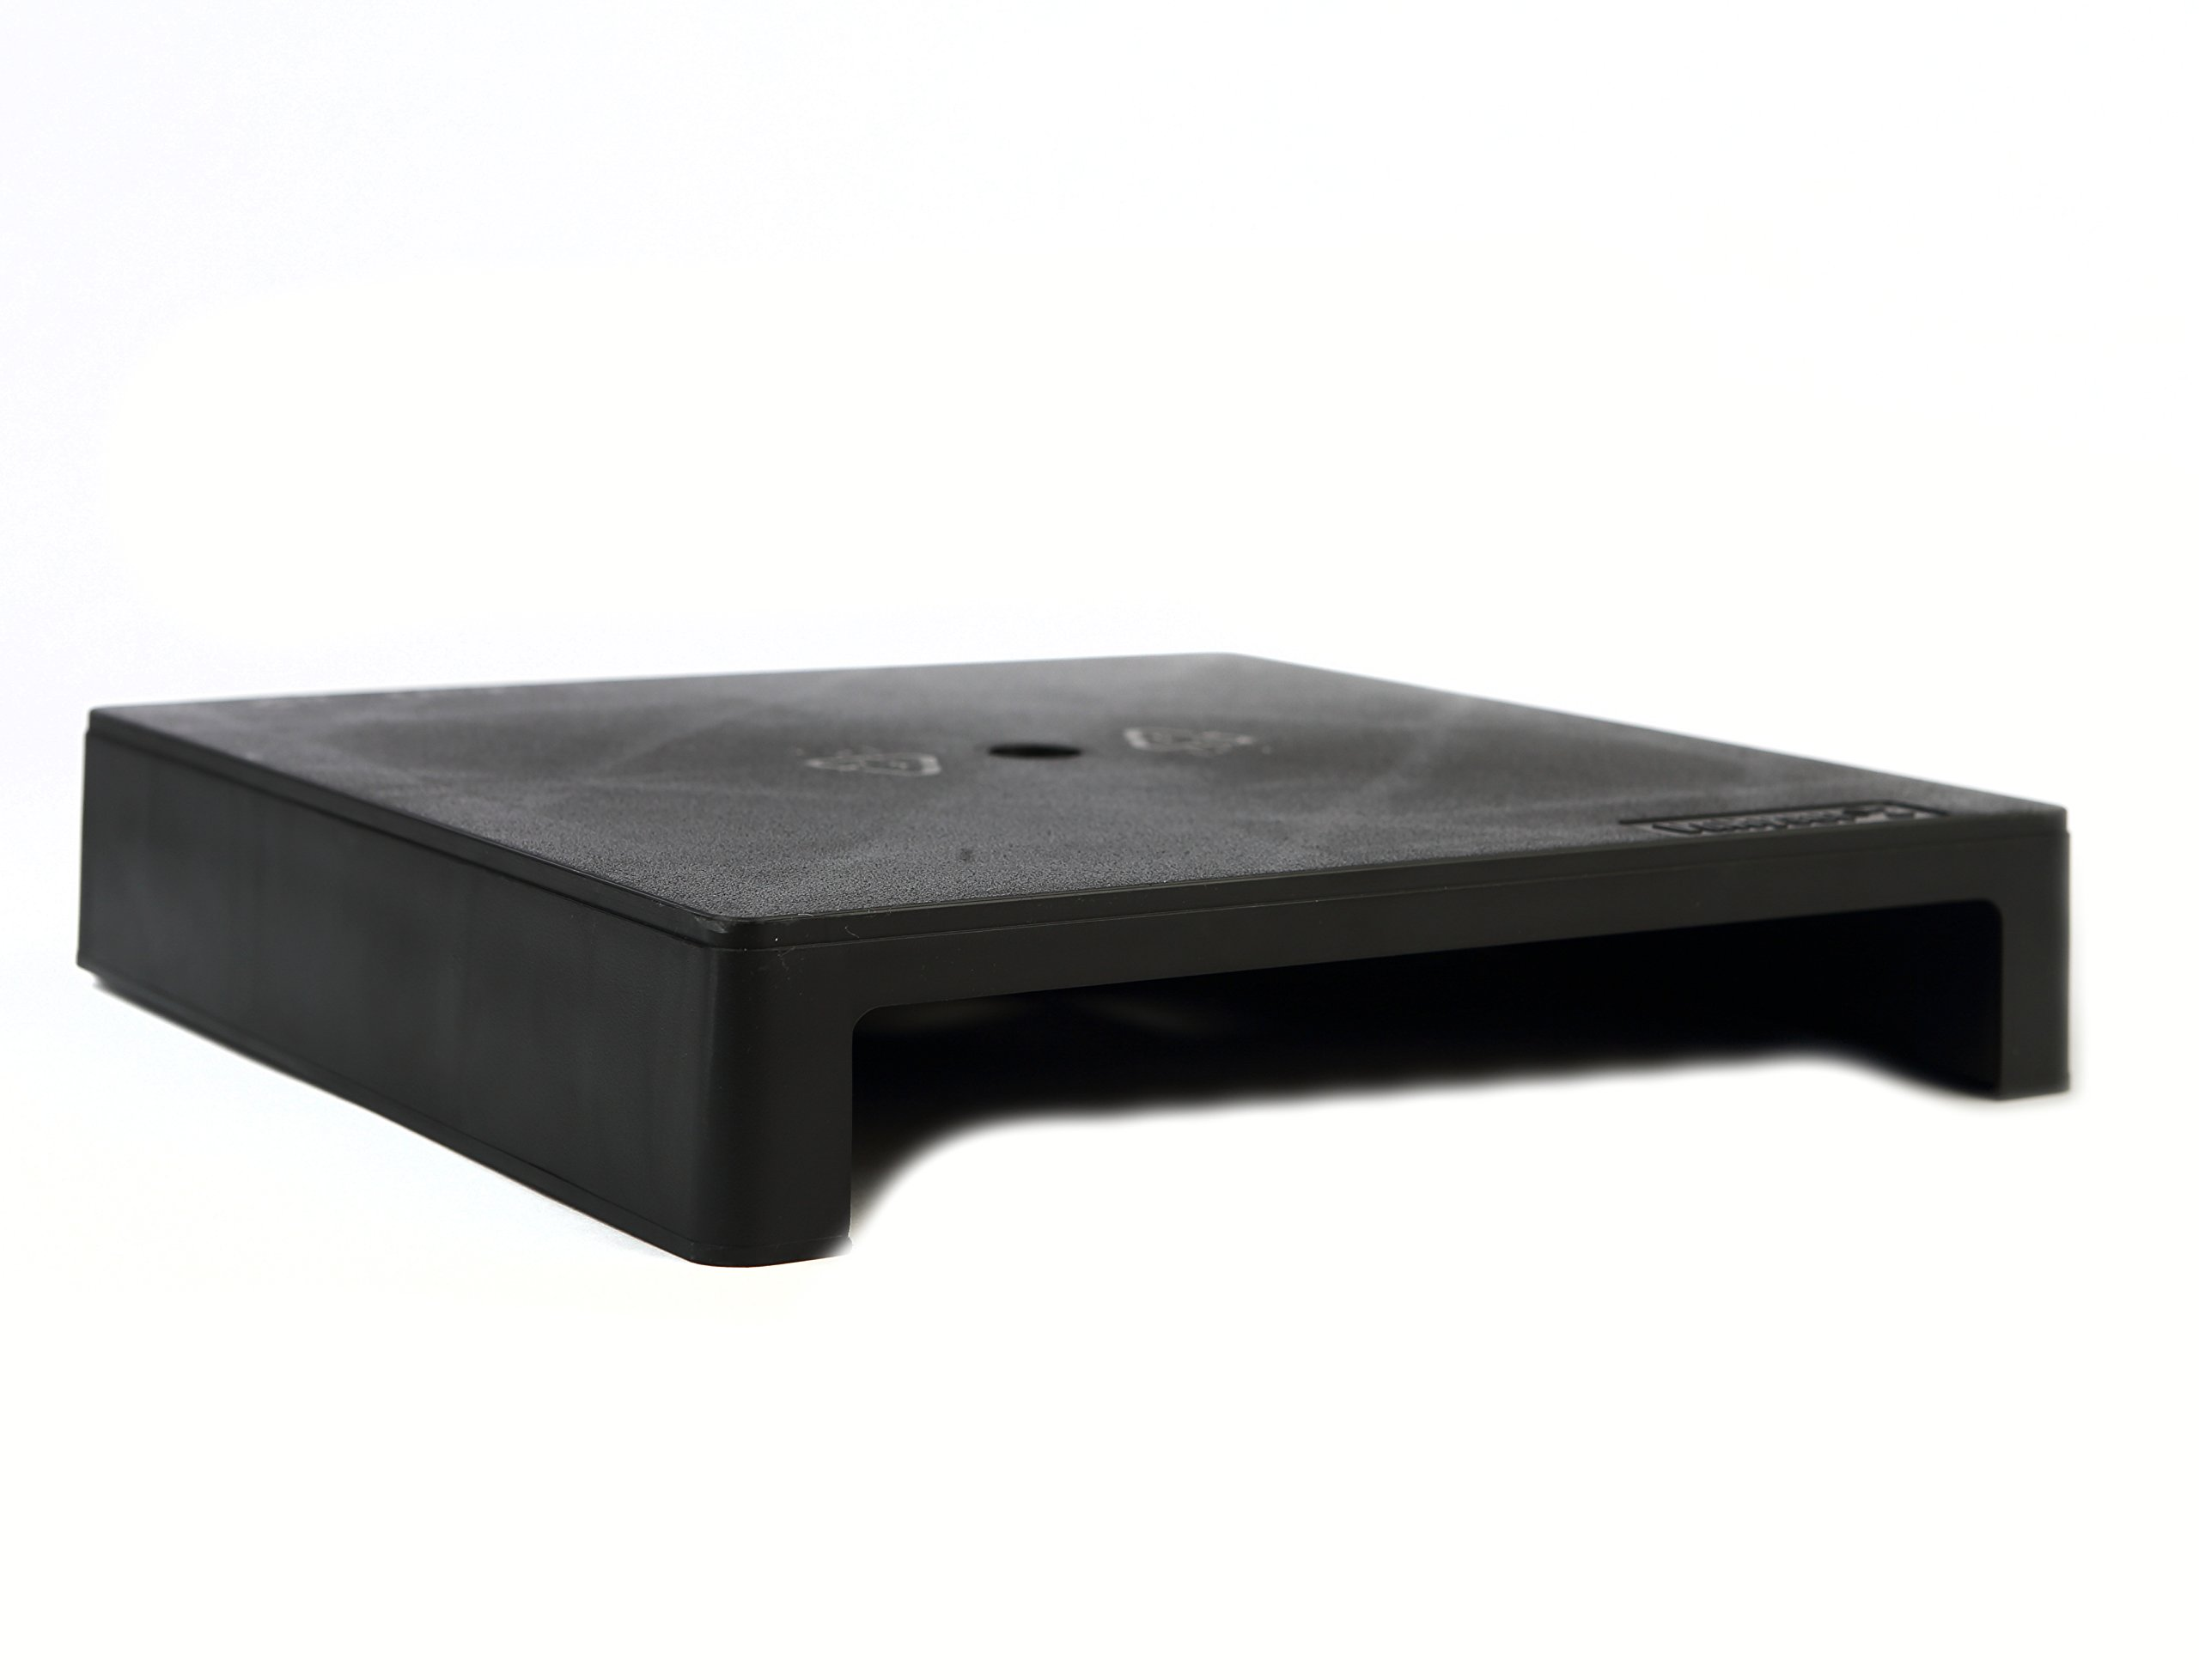 Vu Ryte Stackable 2 Inch Computer Monitor Stand, VuRyser 2, 11.37 X 11.37 X 2 inches, Graphite, Set of 2 (VUR 4855). 100% MADE IN USA.